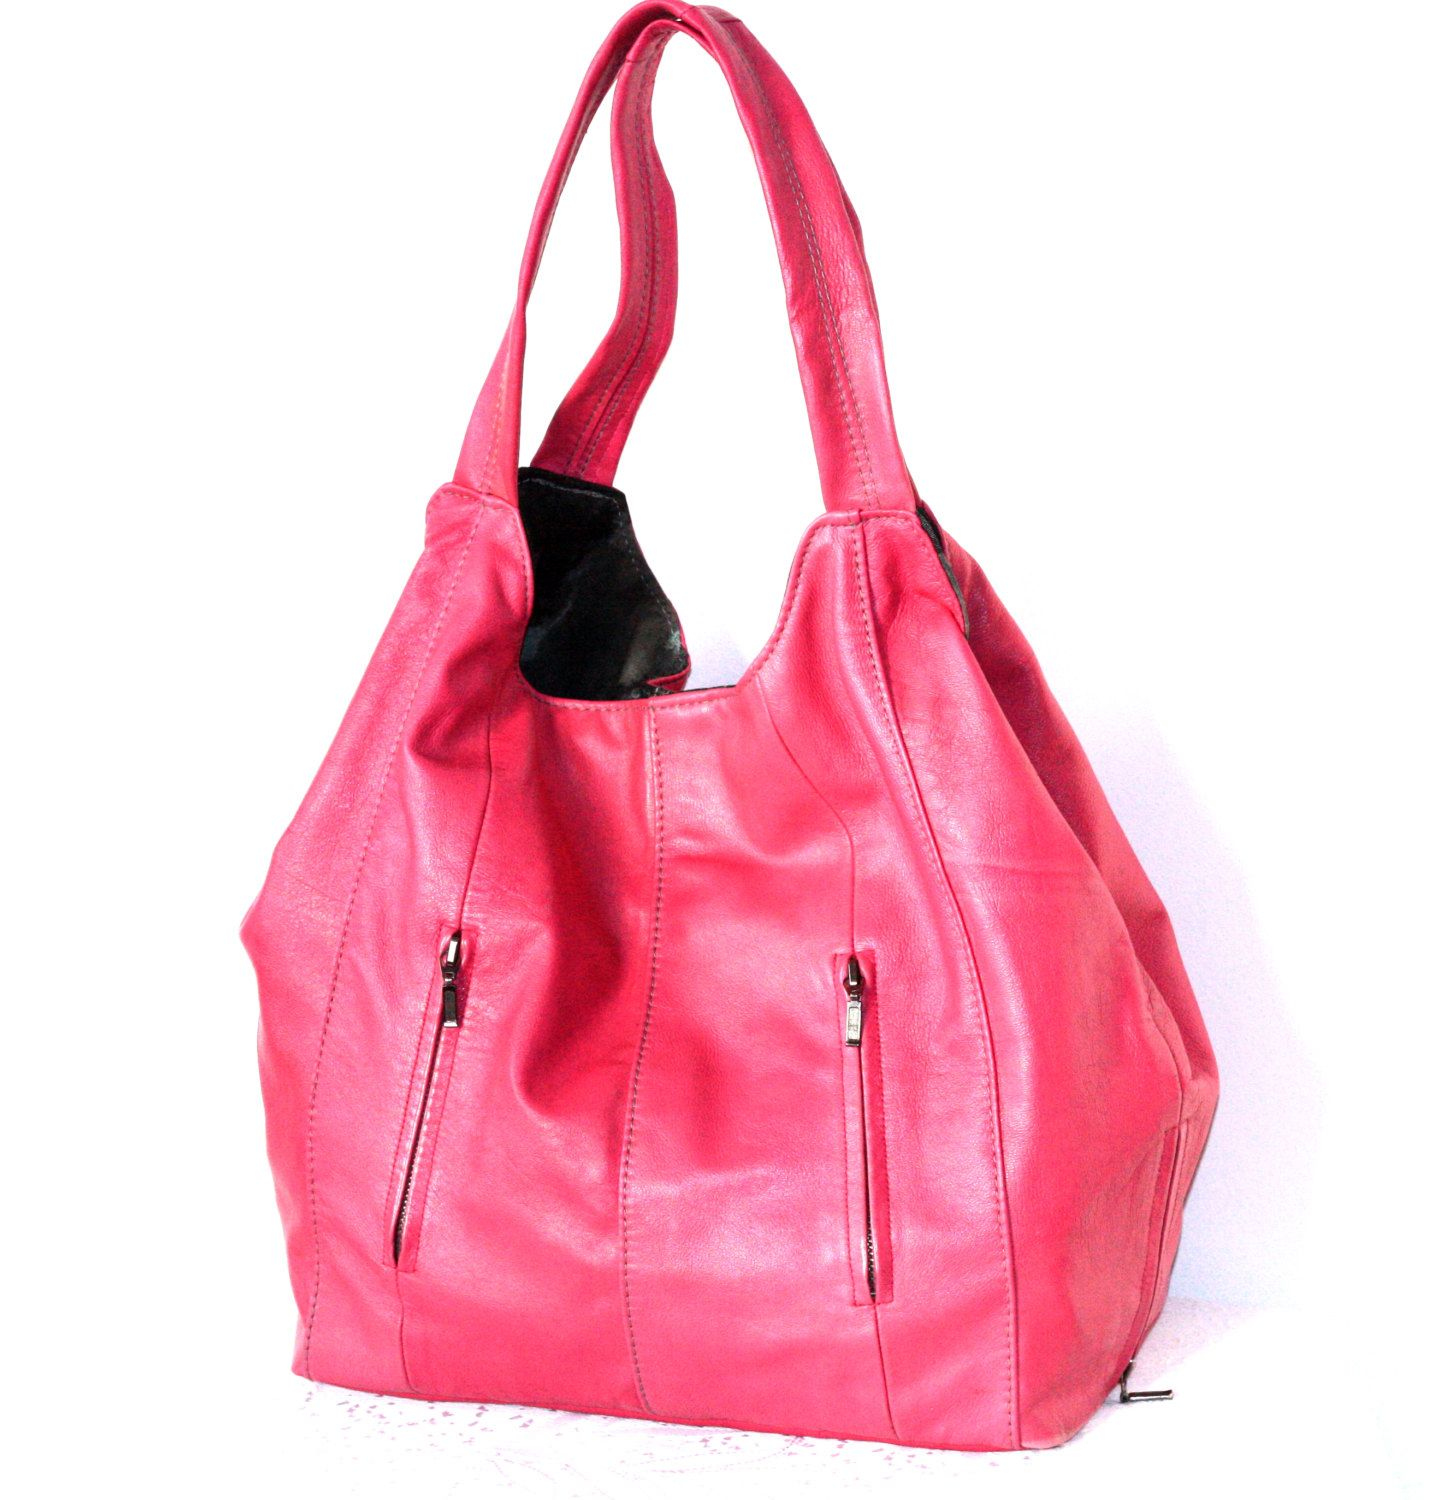 72572945a11a Handmade Large Leather Bag